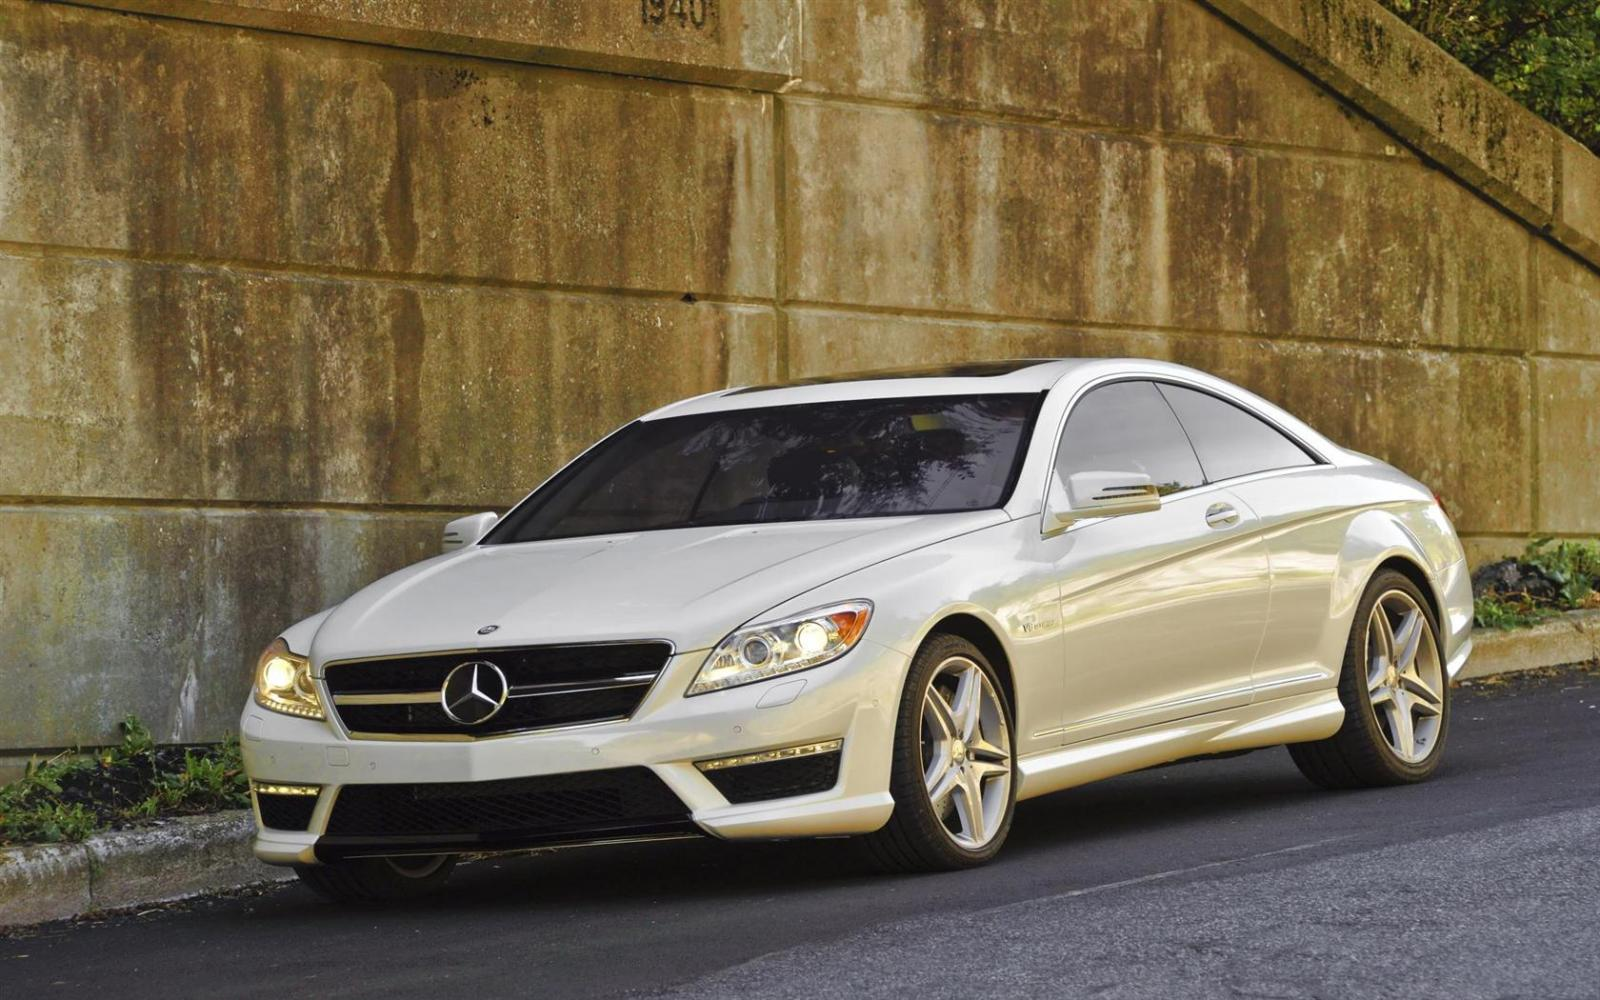 2012 mercedes benz cl class information and photos for Mercedes benz cl550